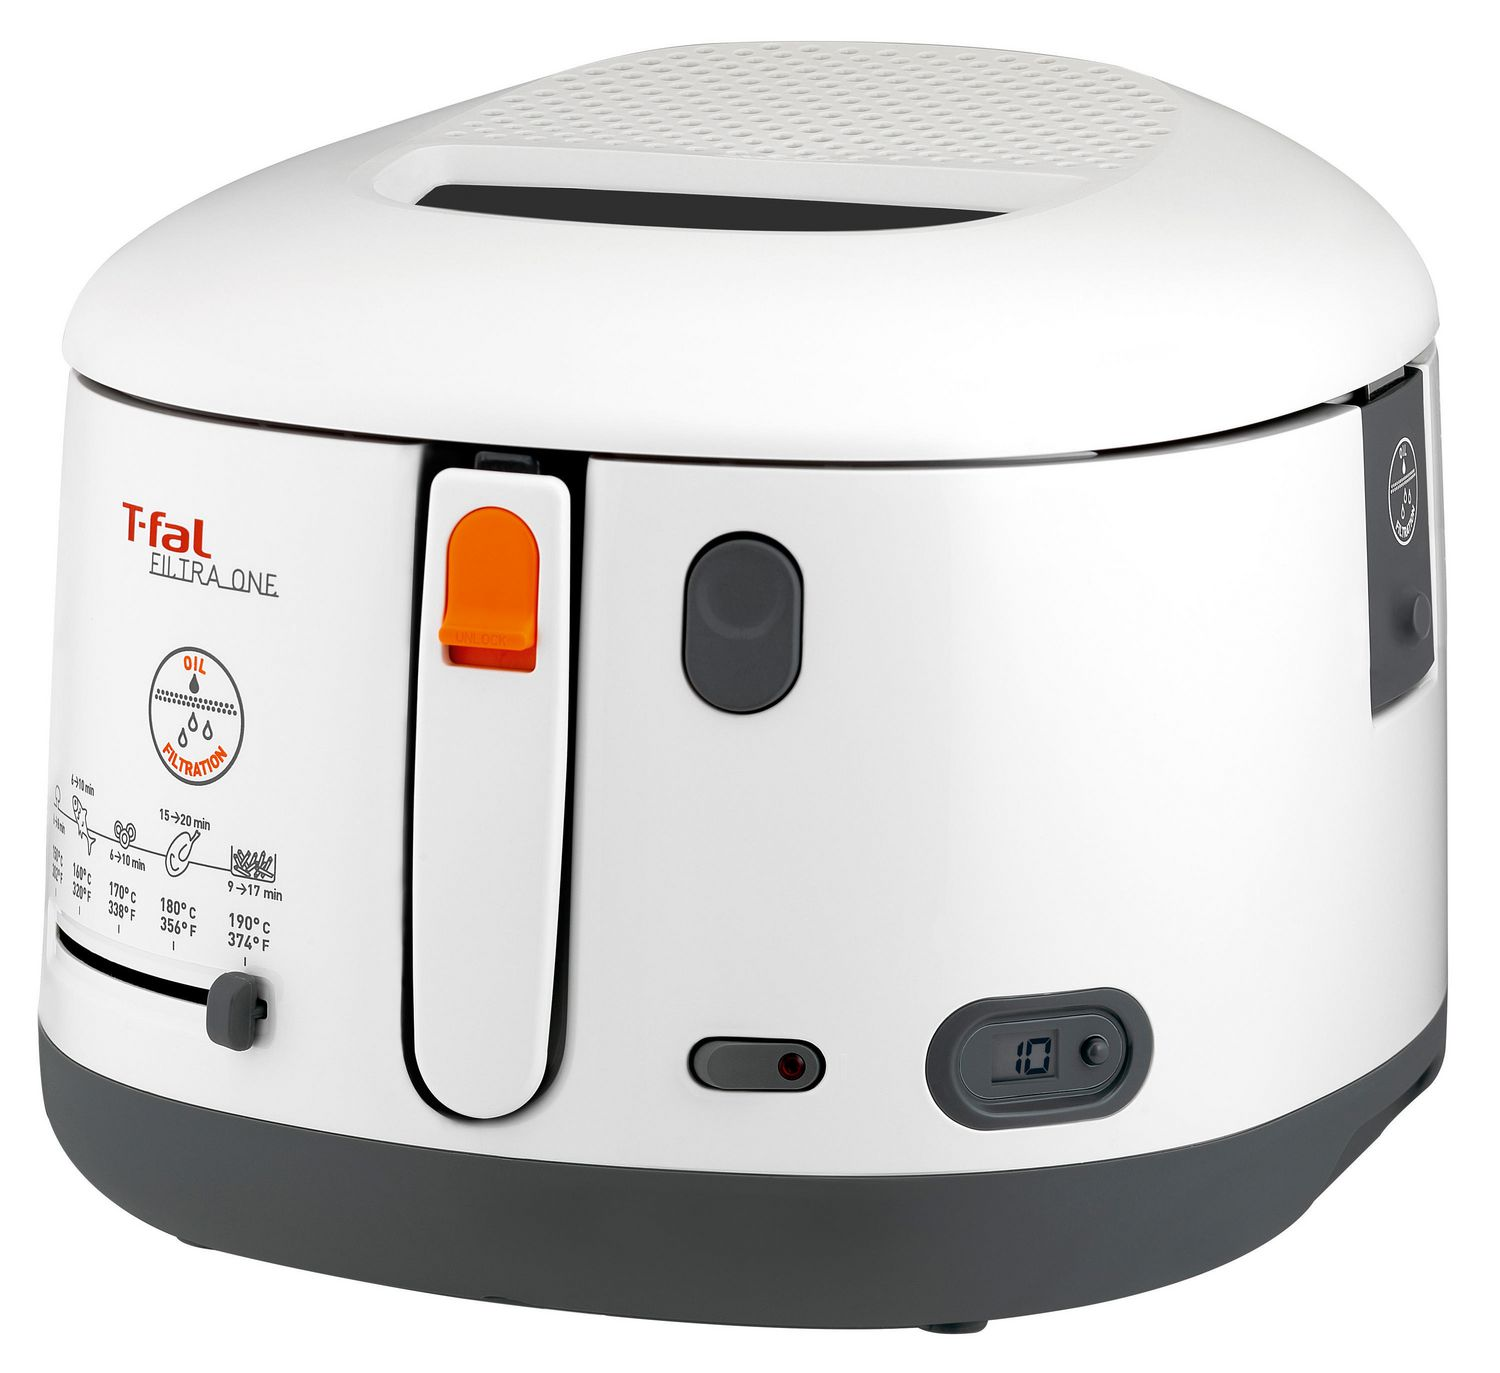 T Fal Filtra Pro 3 L Fryer 1600W Permanent Filter Viewing Window Gift Idea